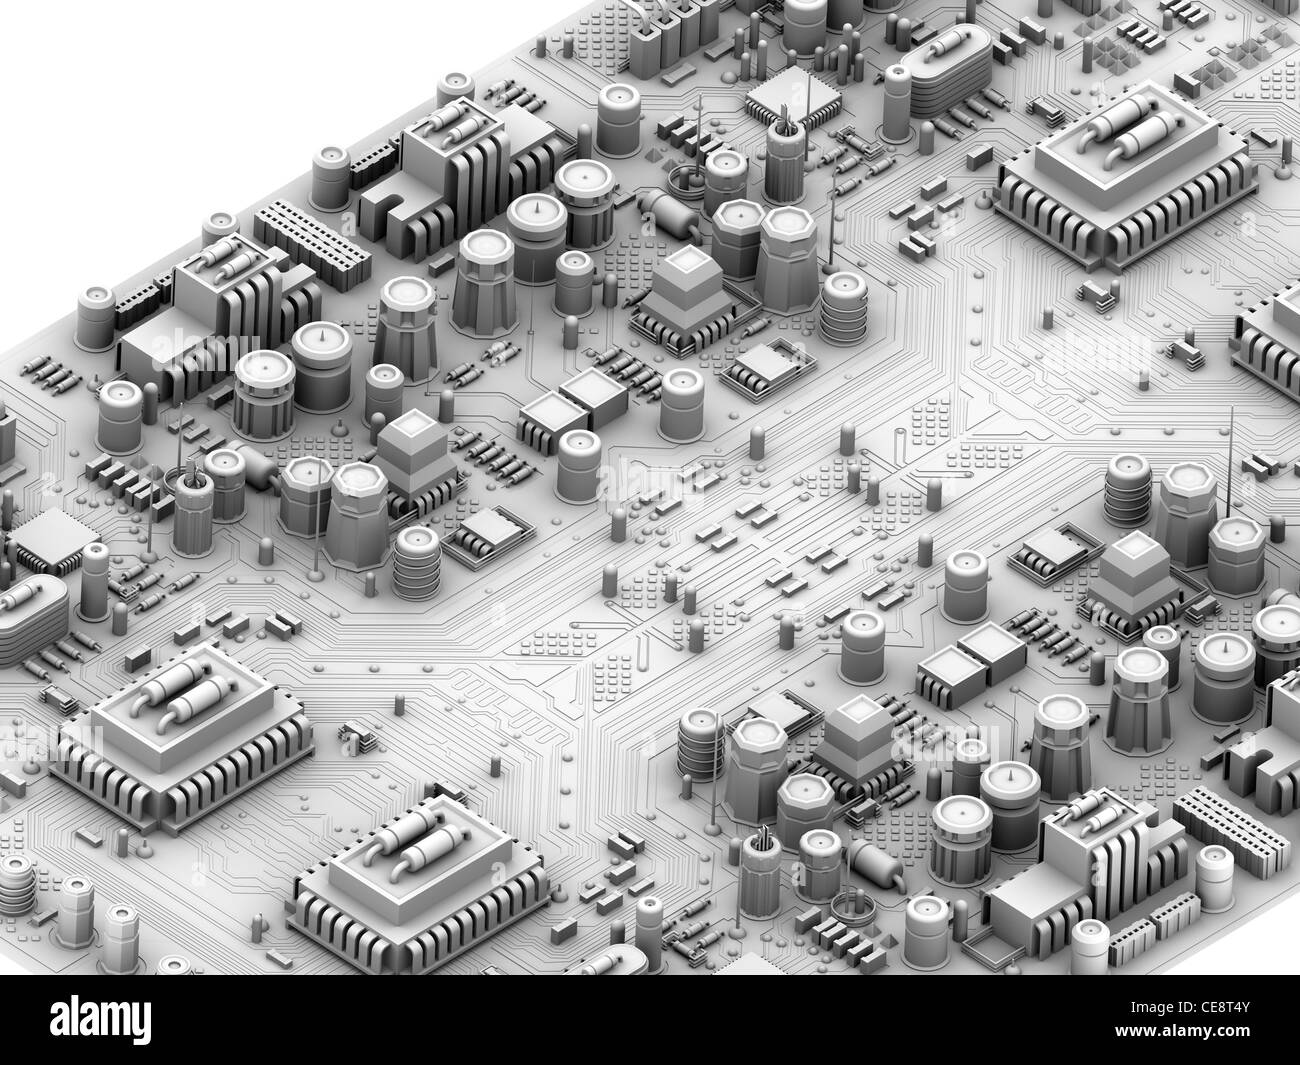 Circuit board. Computer artwork depicting city scape made of Stock ...